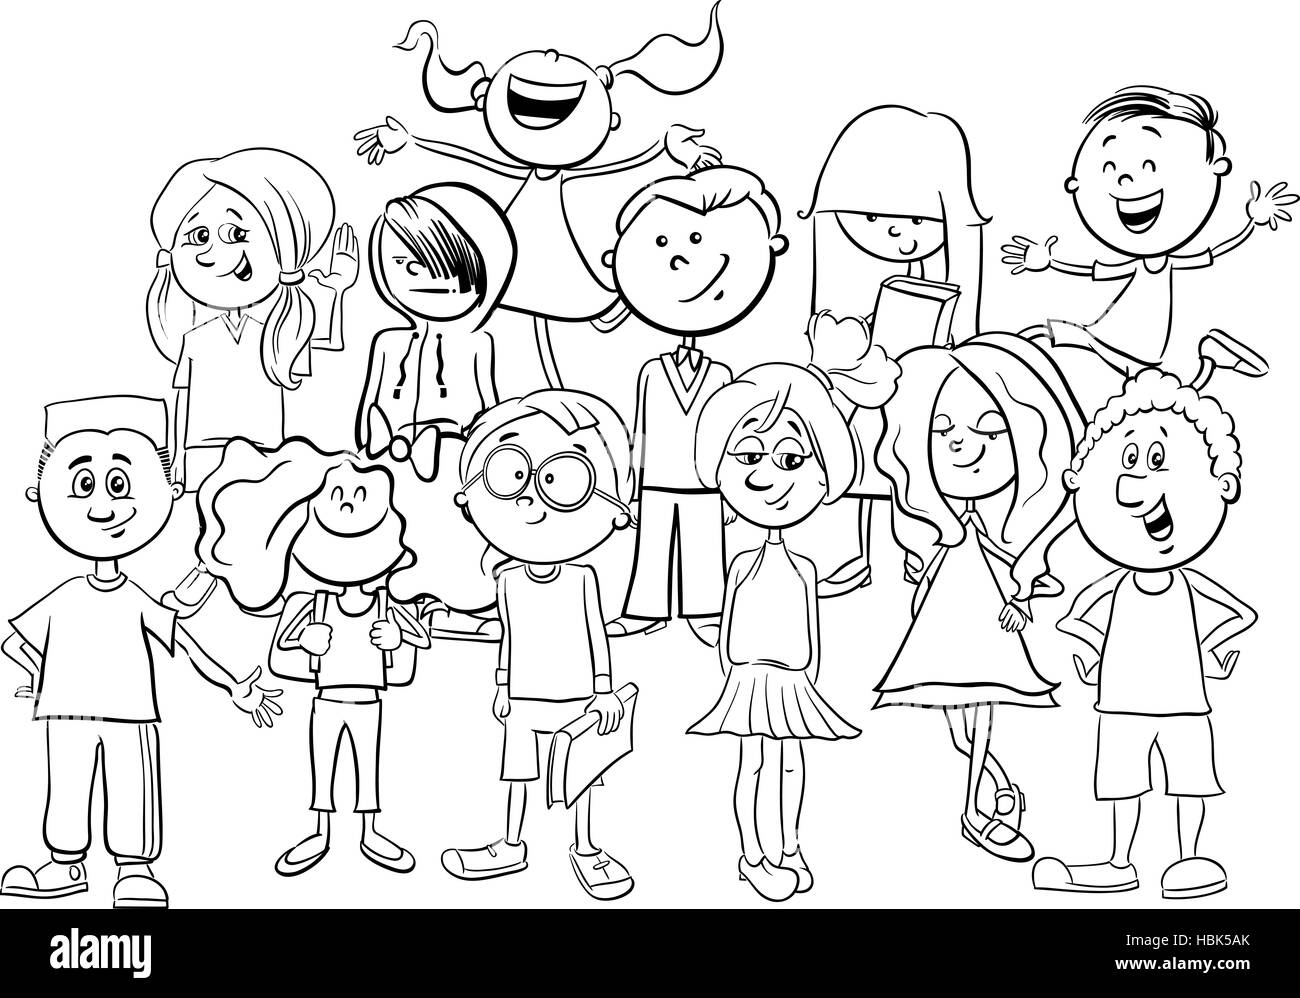 kids or teens coloring page Stock Photo: 127655099 - Alamy